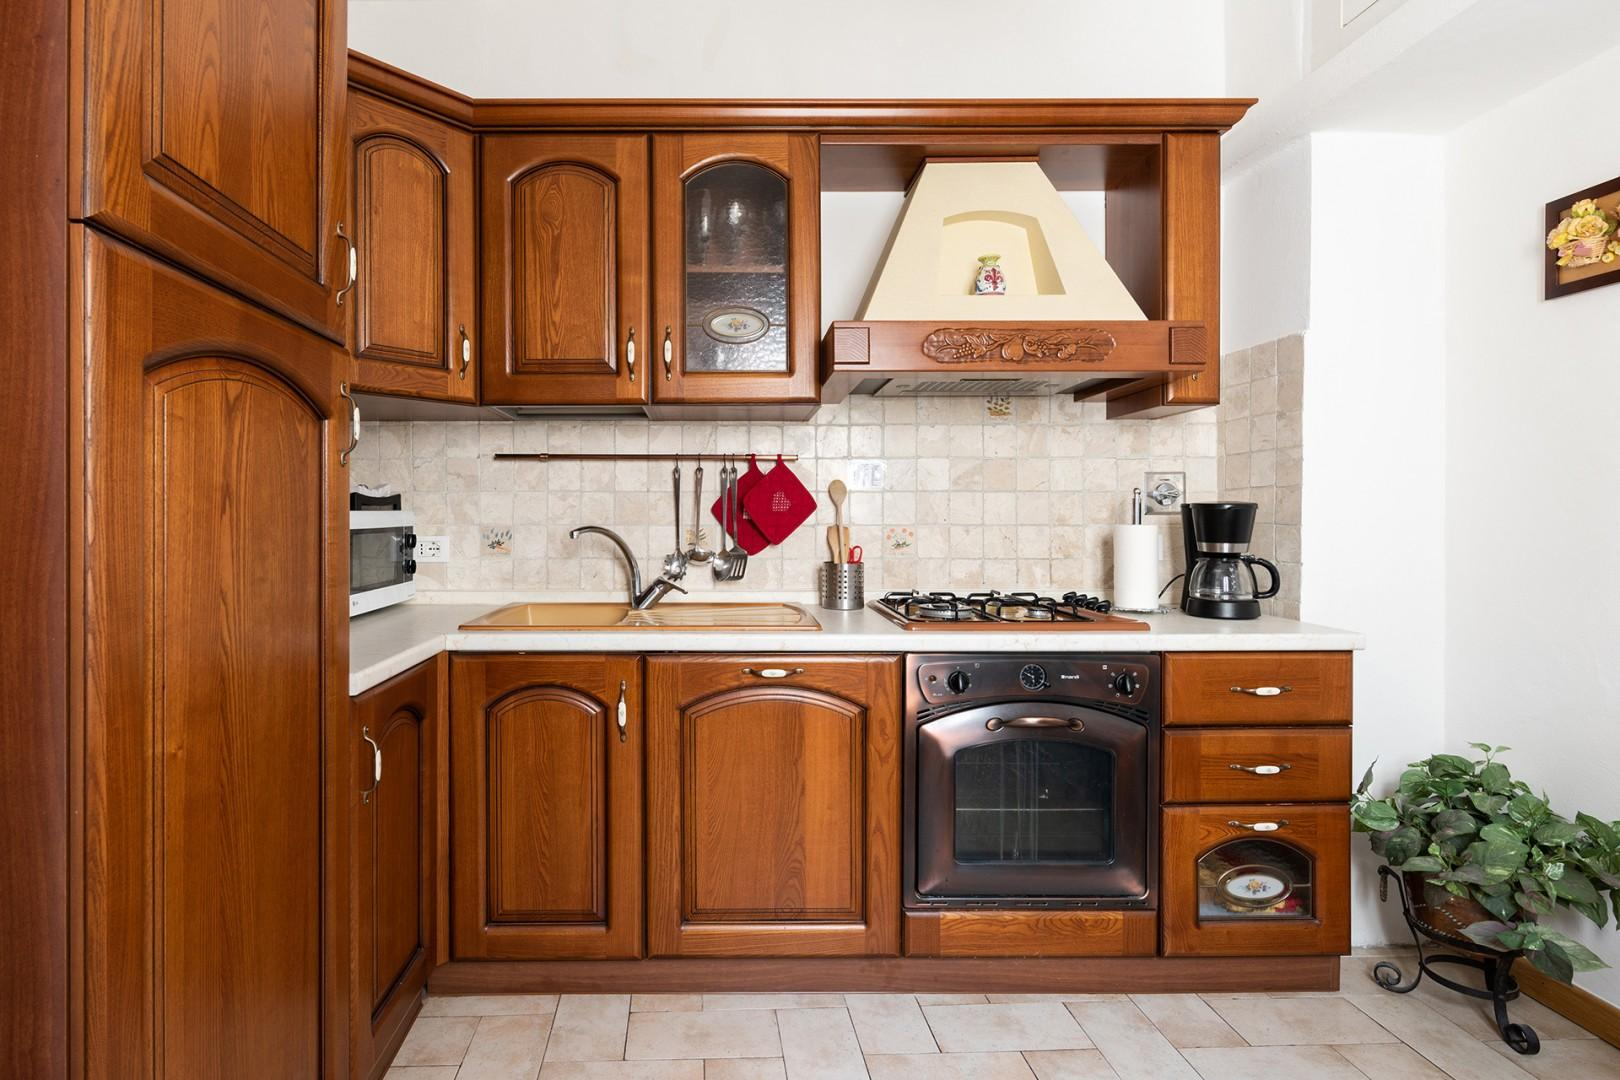 Large kitchen will make you want to try your hand at cooking at home.